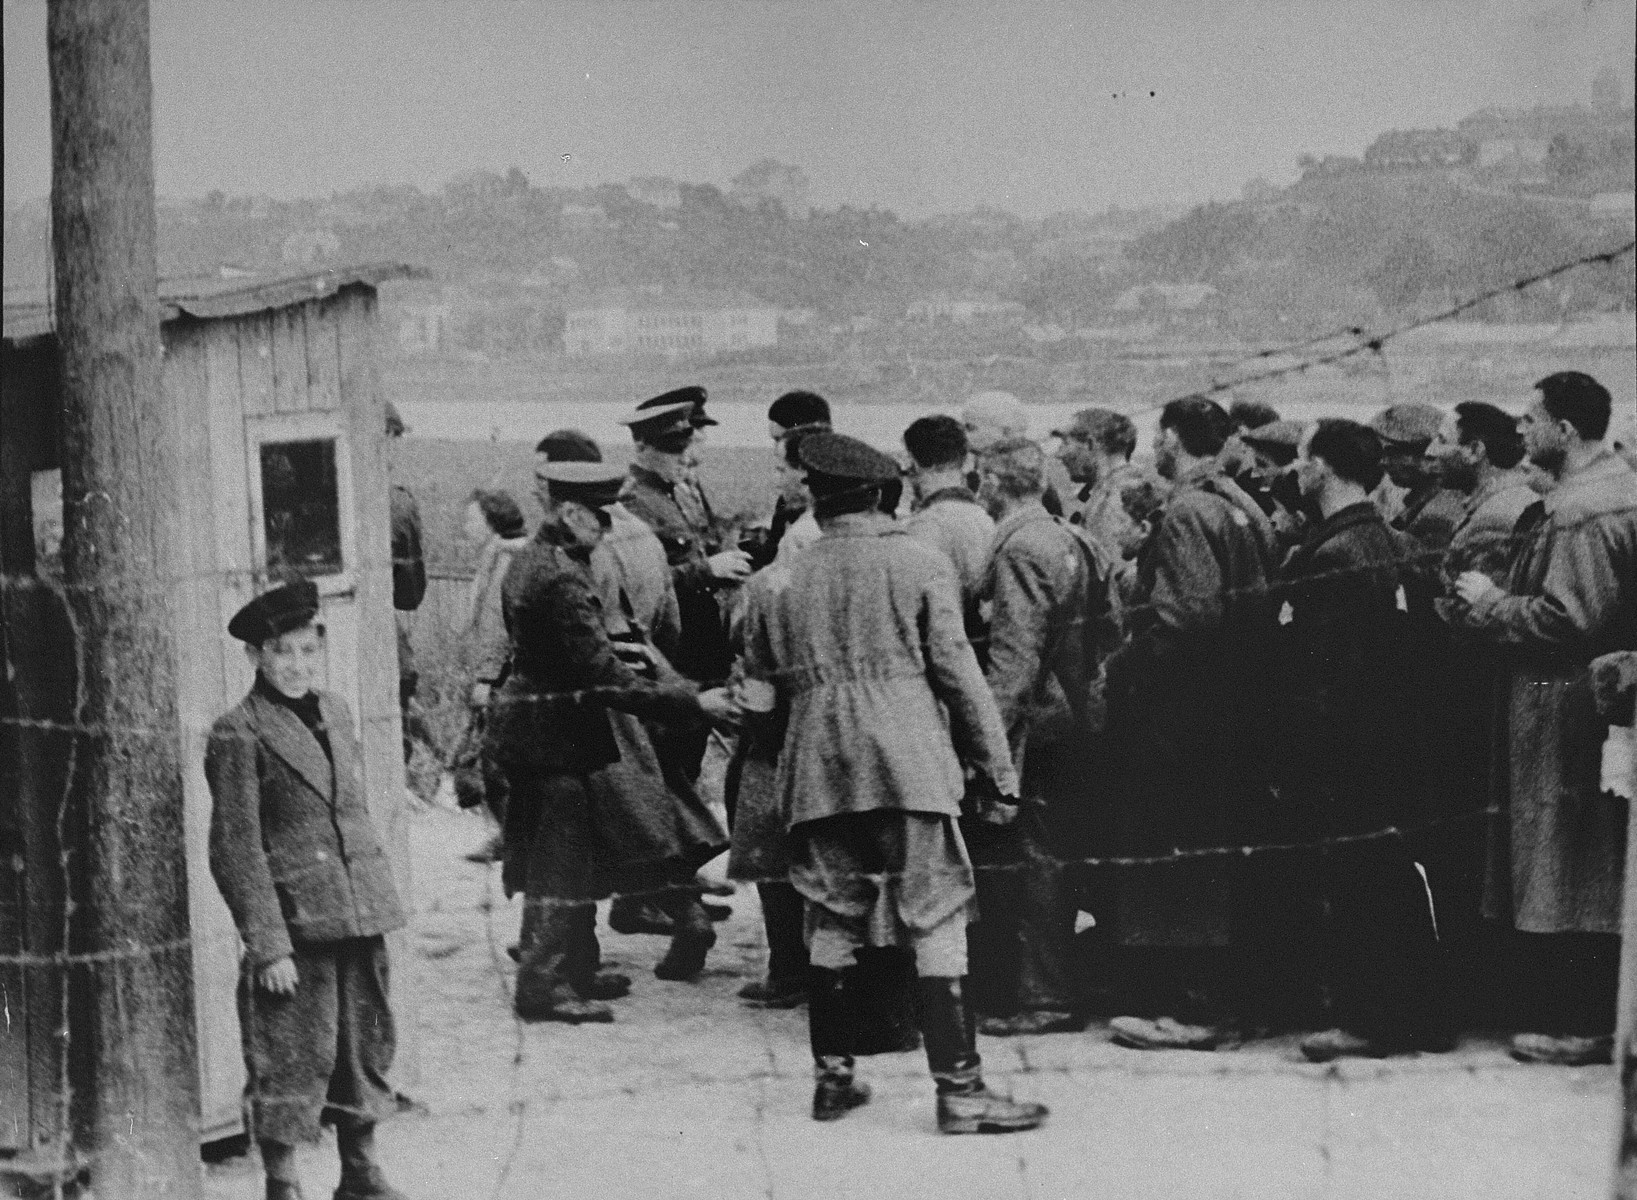 A group of Jewish men return to the ghetto after forced labor on the outside.   Here, they line-up at the entrance to the ghetto to be searched by German and Lithuanian guards. A Jewish policeman stands with his back to the camera. A boy poses near the barbed-wire fence.  The Jewish men had to remove their hats in the presence of a German; the bald man in the center is Yankel Meishe Velikoludas.